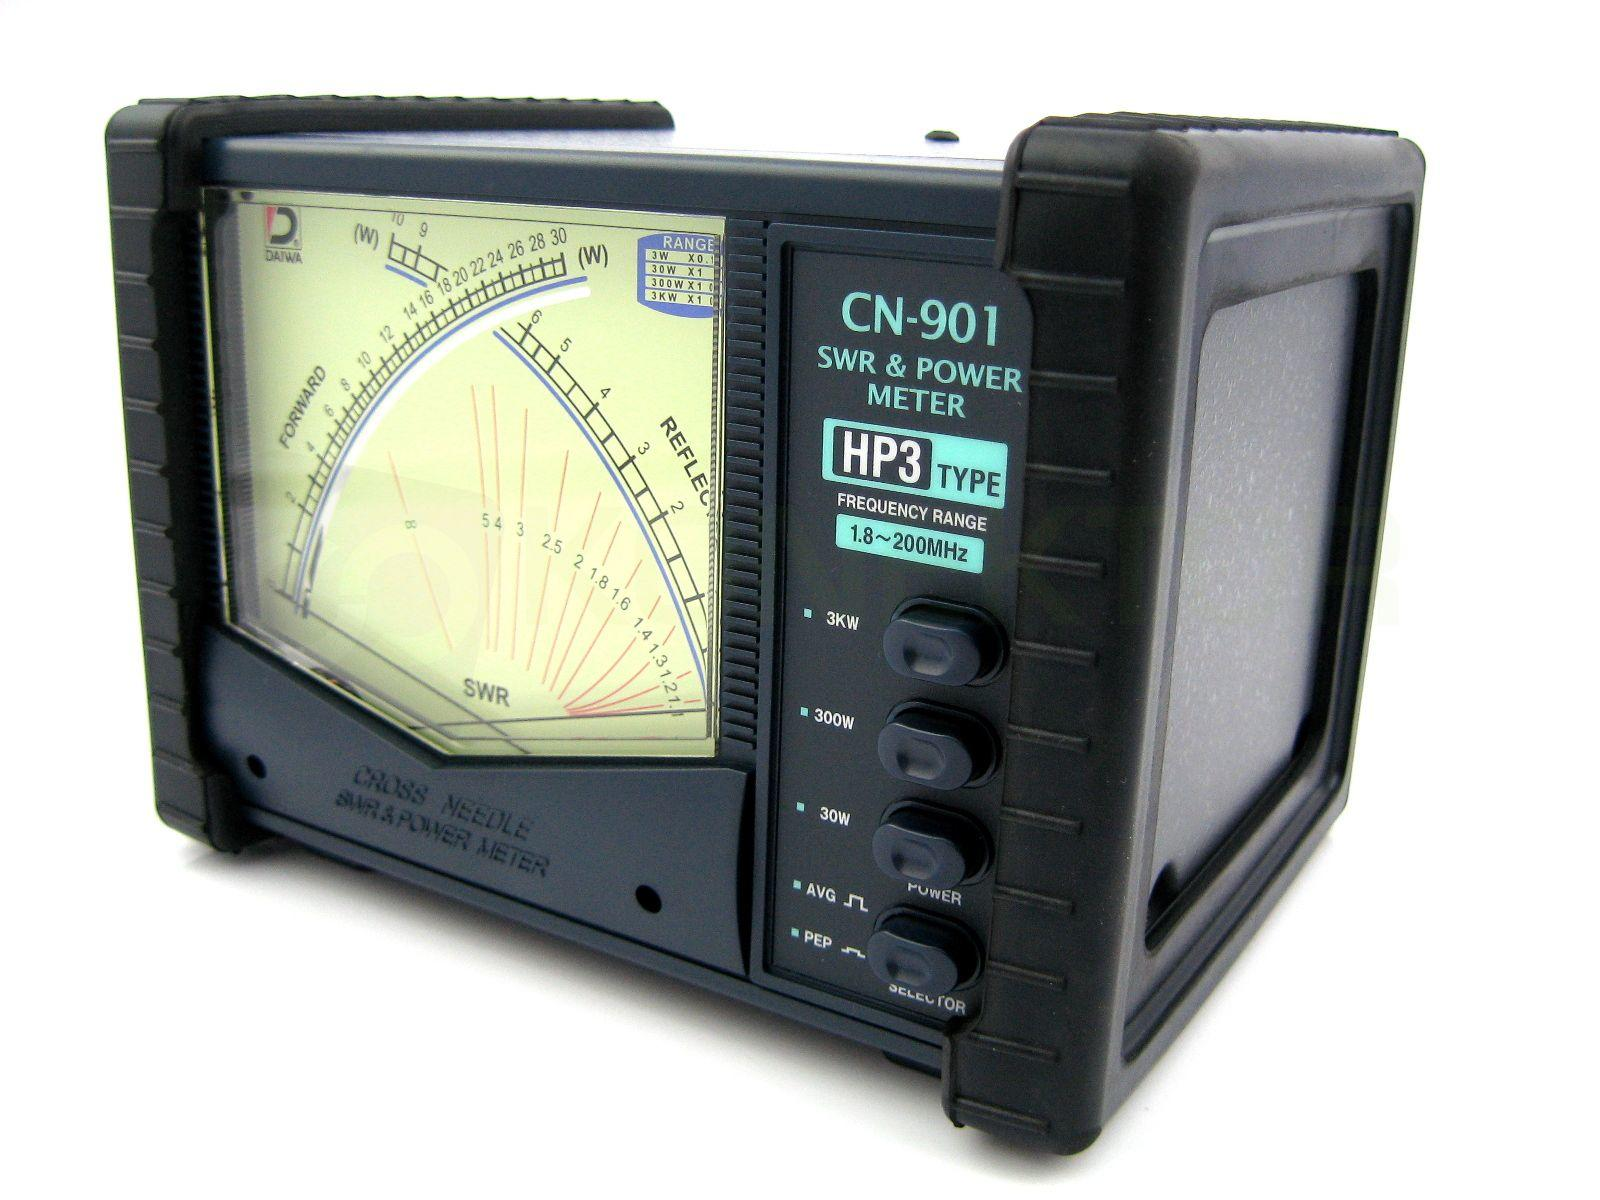 Daiwa CN901-HP3  Higher power 3kw 1.8-200MHz Power/SWR meter